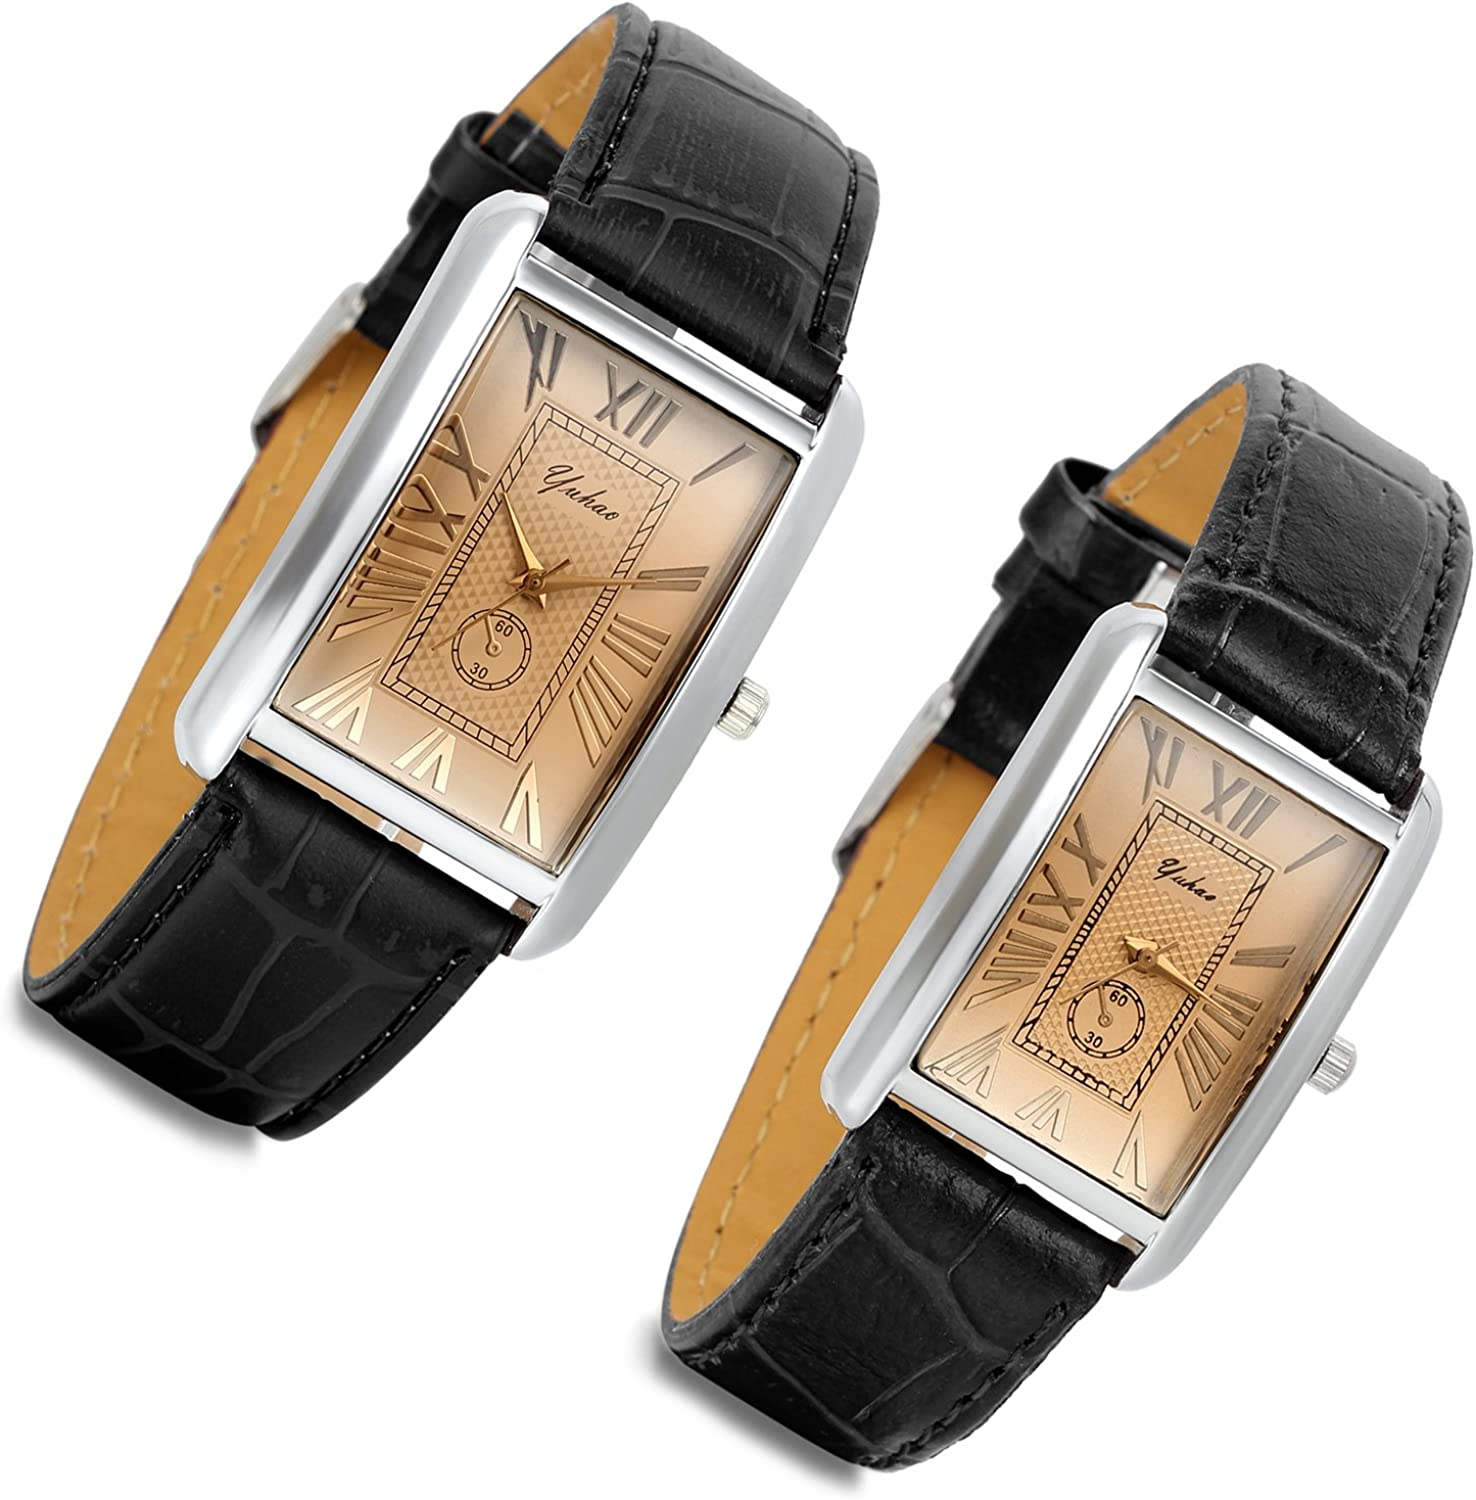 Romantic Couple Watch Set Square Watches Love for Men and Women 2 Pcs Retro Vintage Silver Tone Case Crocodile Pattern Black Leather Wristwatch for Valentine s Day